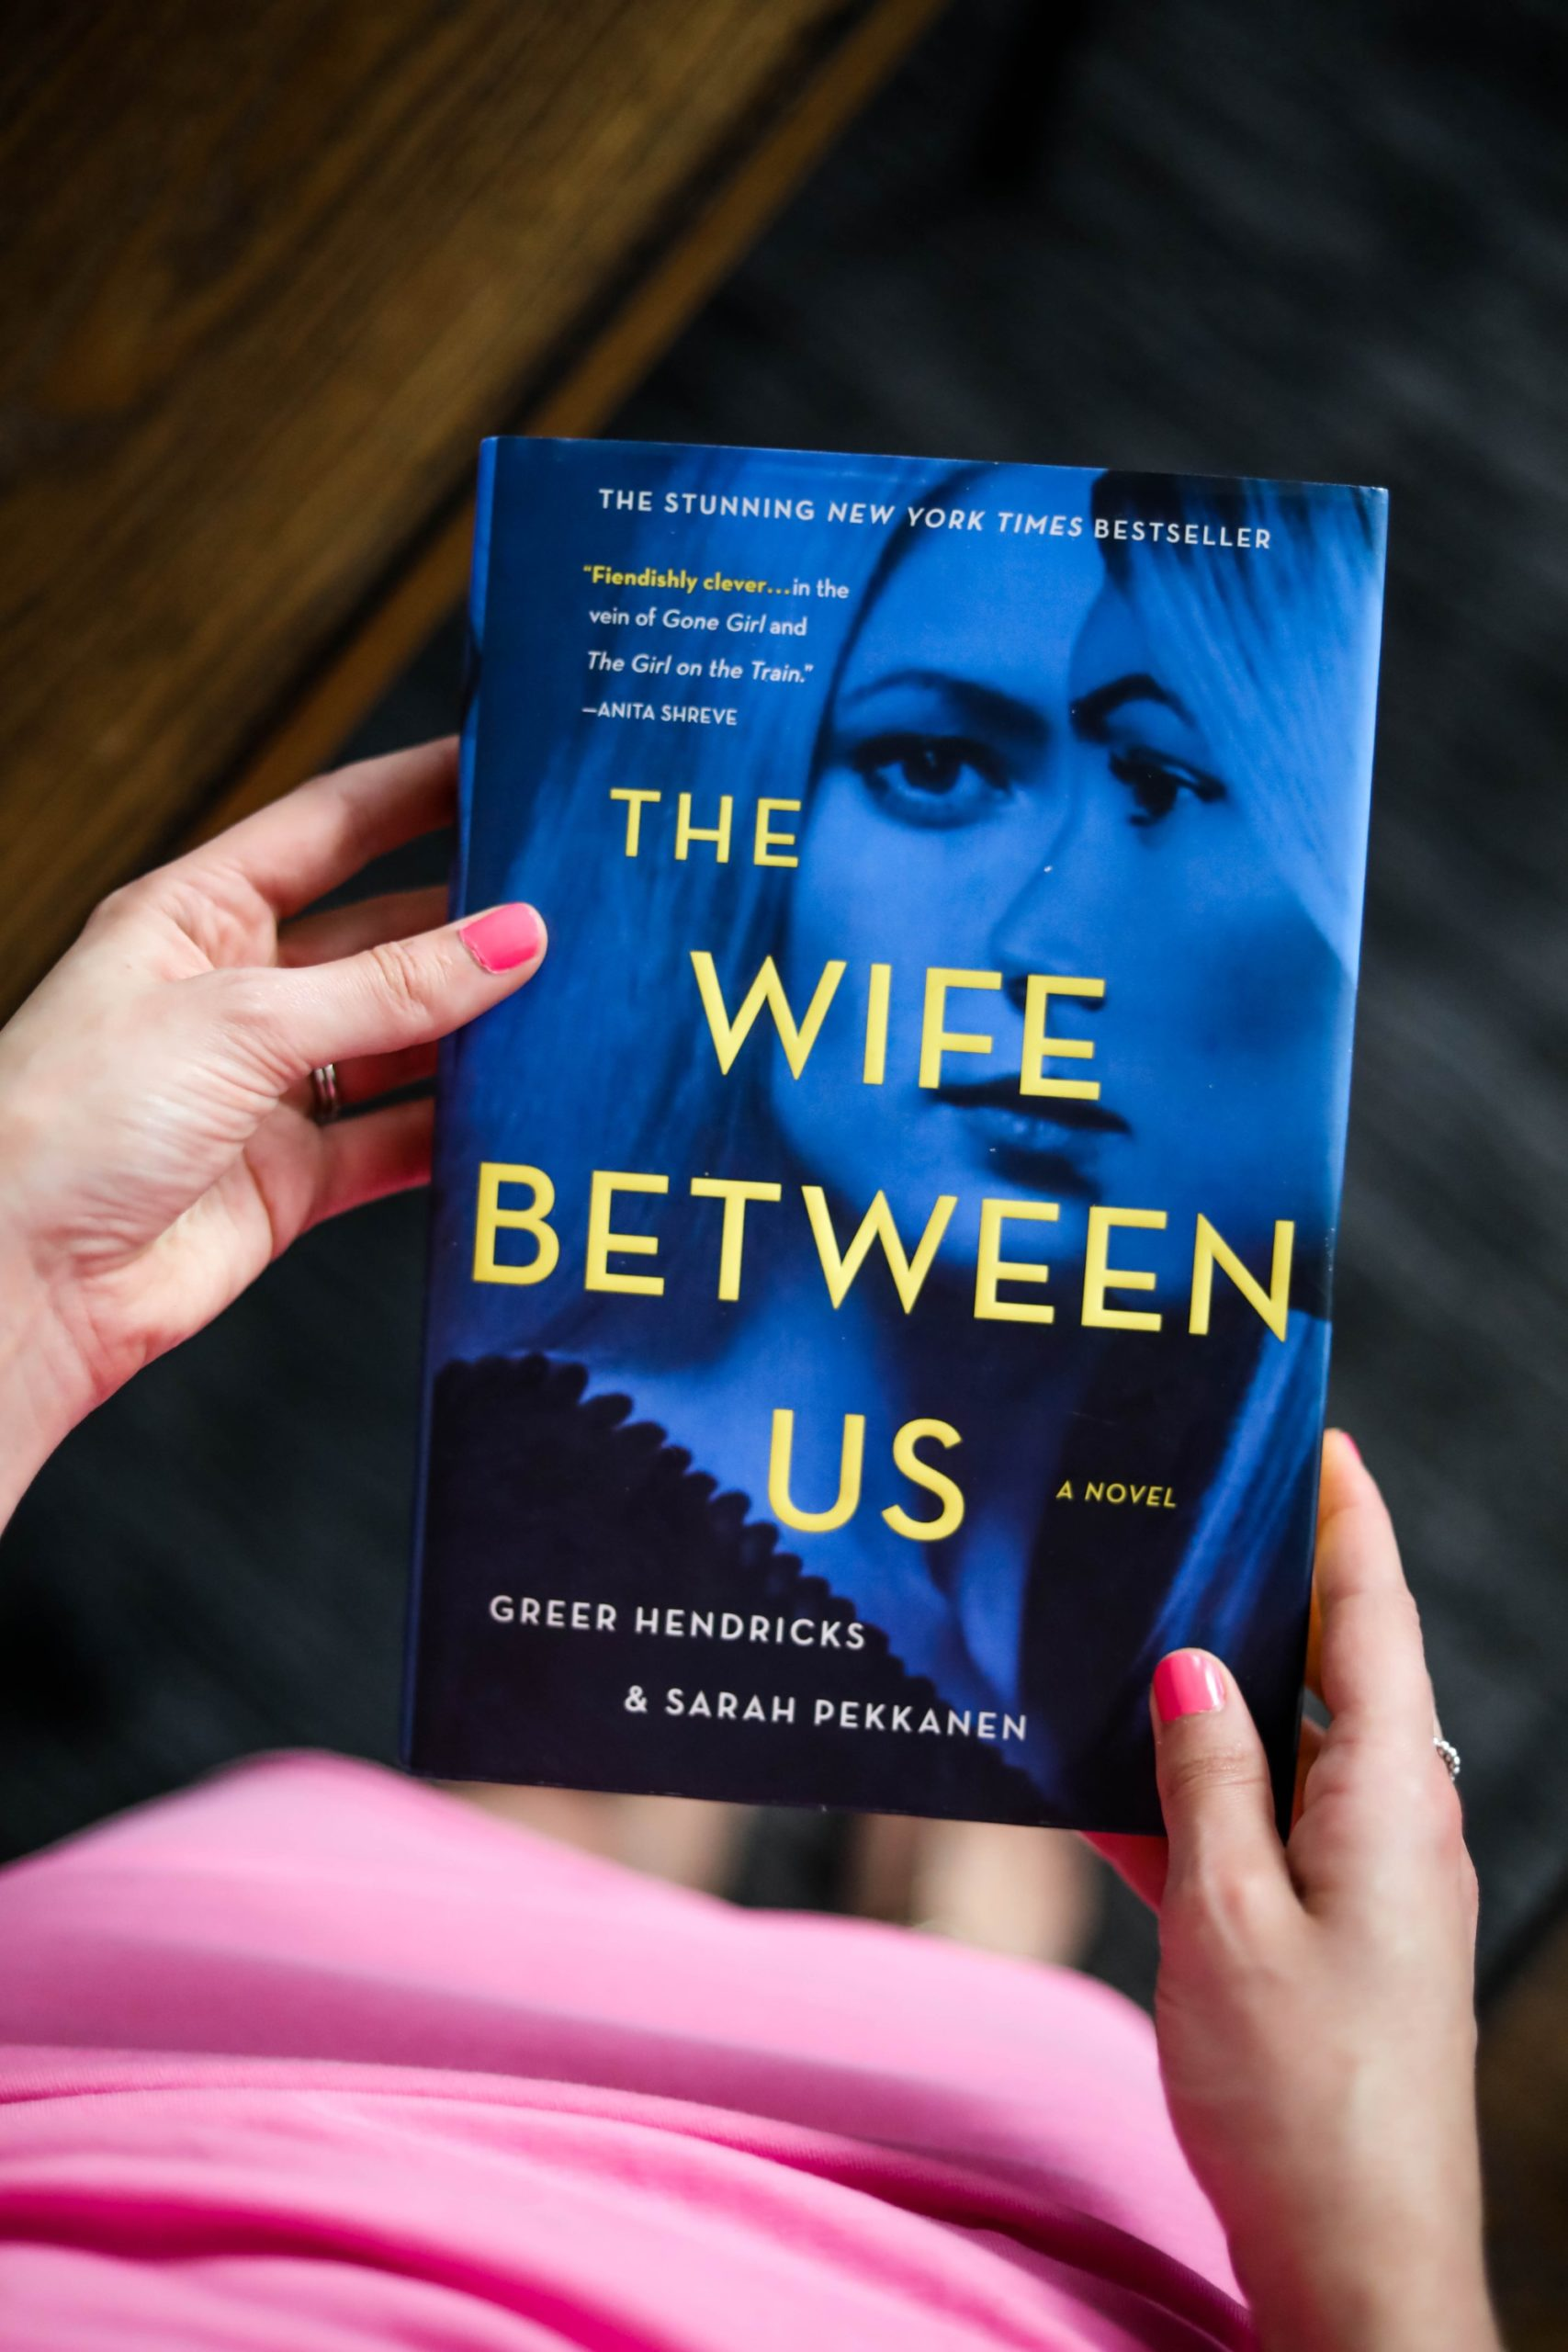 The Wife Between Us book - COOL SH*T I LOVELOVELOVE - Monthly Favorites, June 2020 on Coming Up Roses!